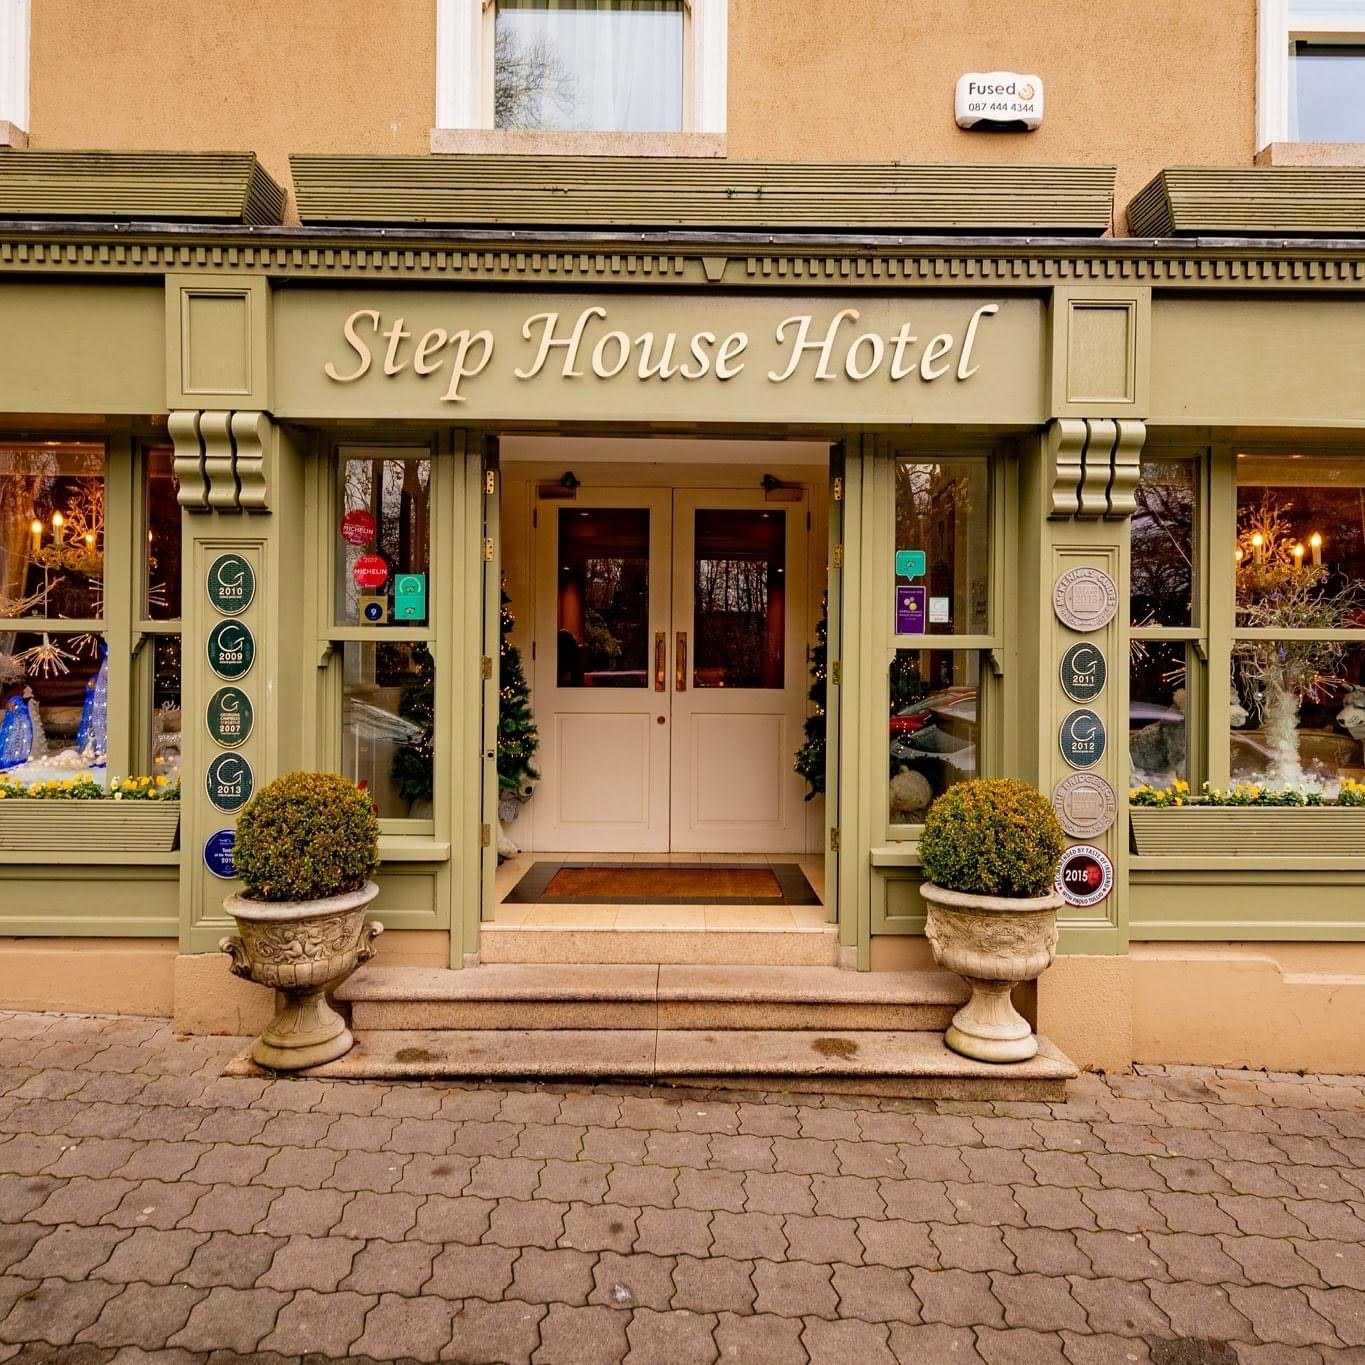 The Step House Hotel